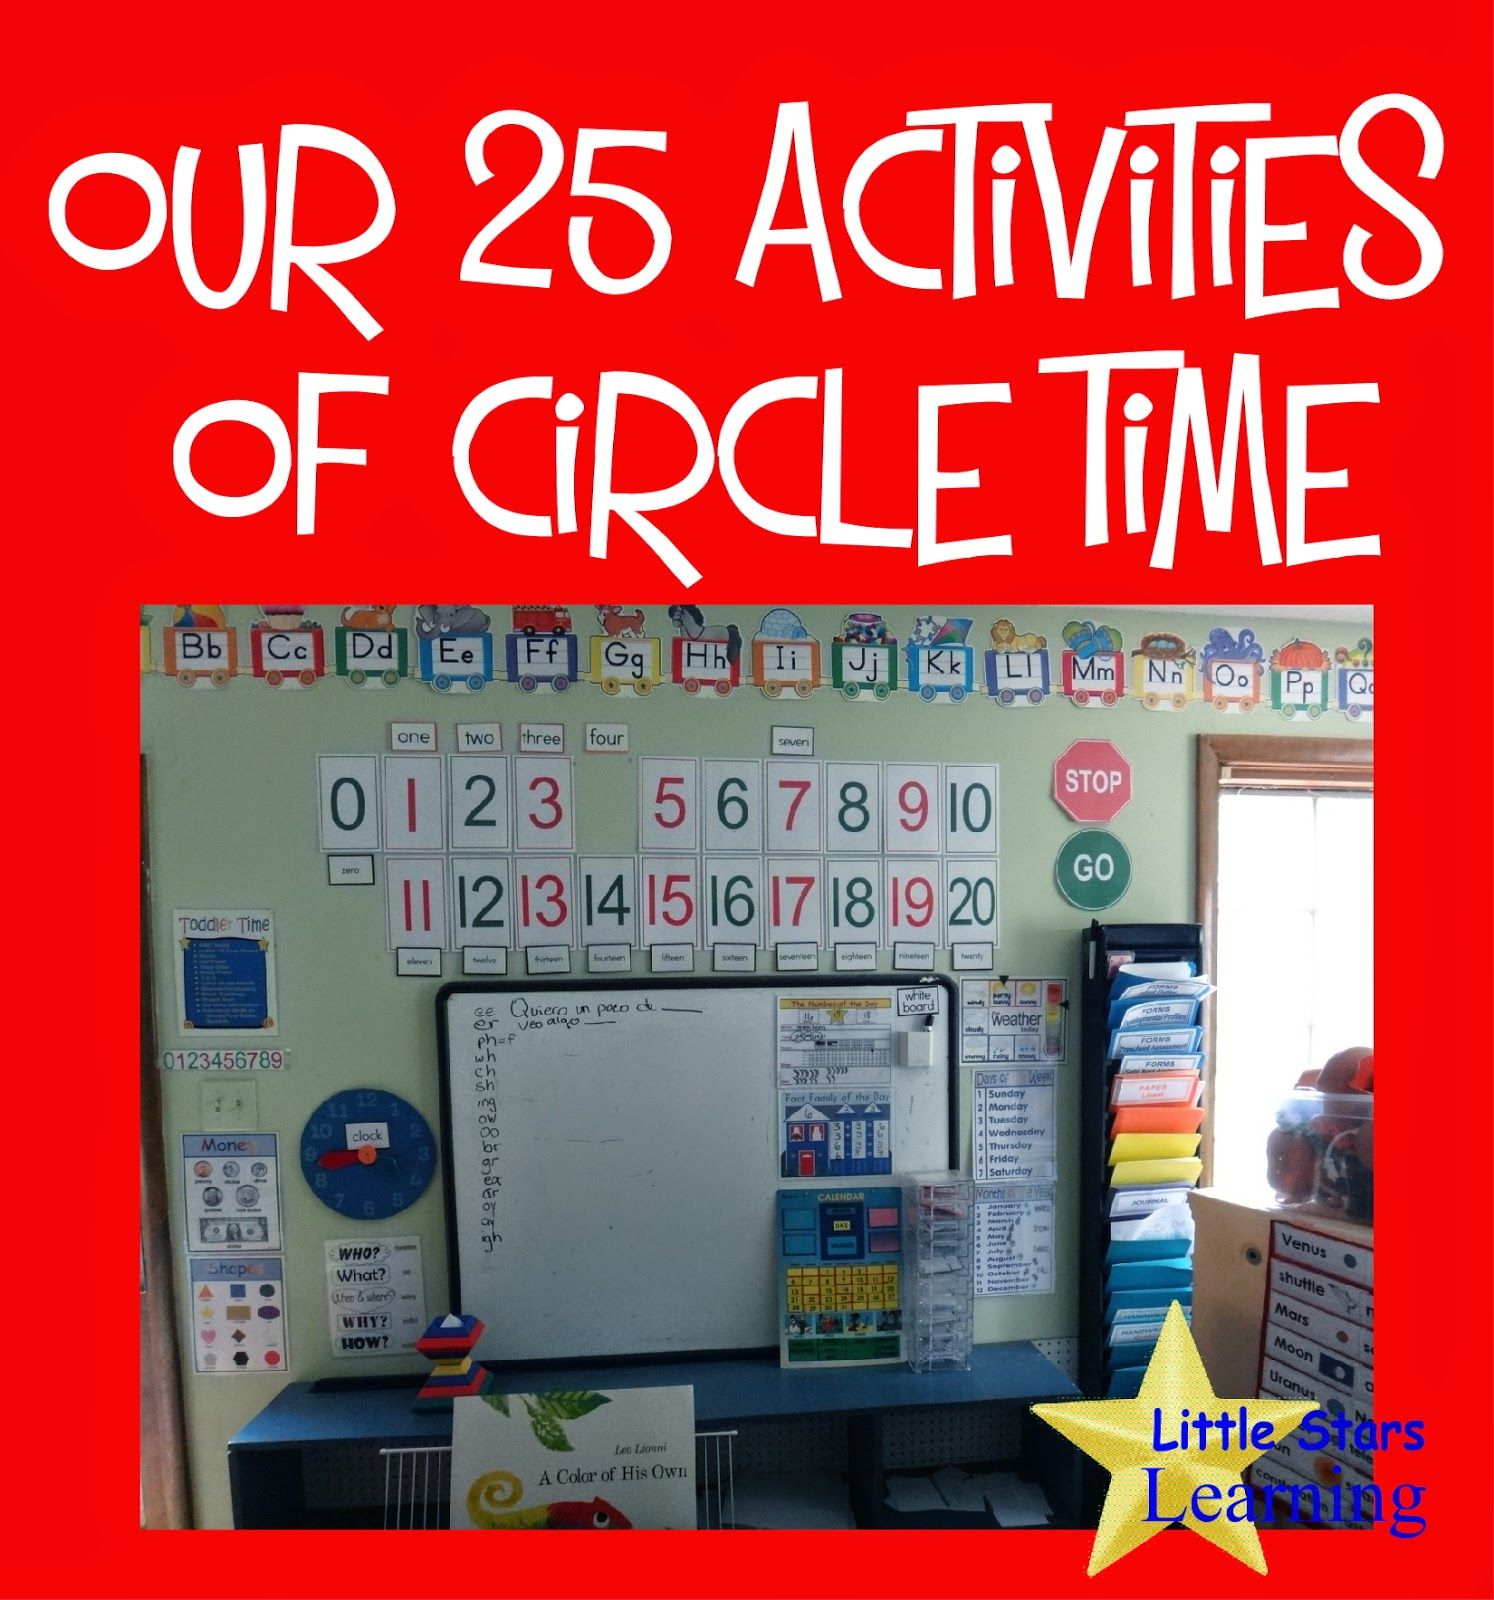 Our 25 Activities Of Circle Time